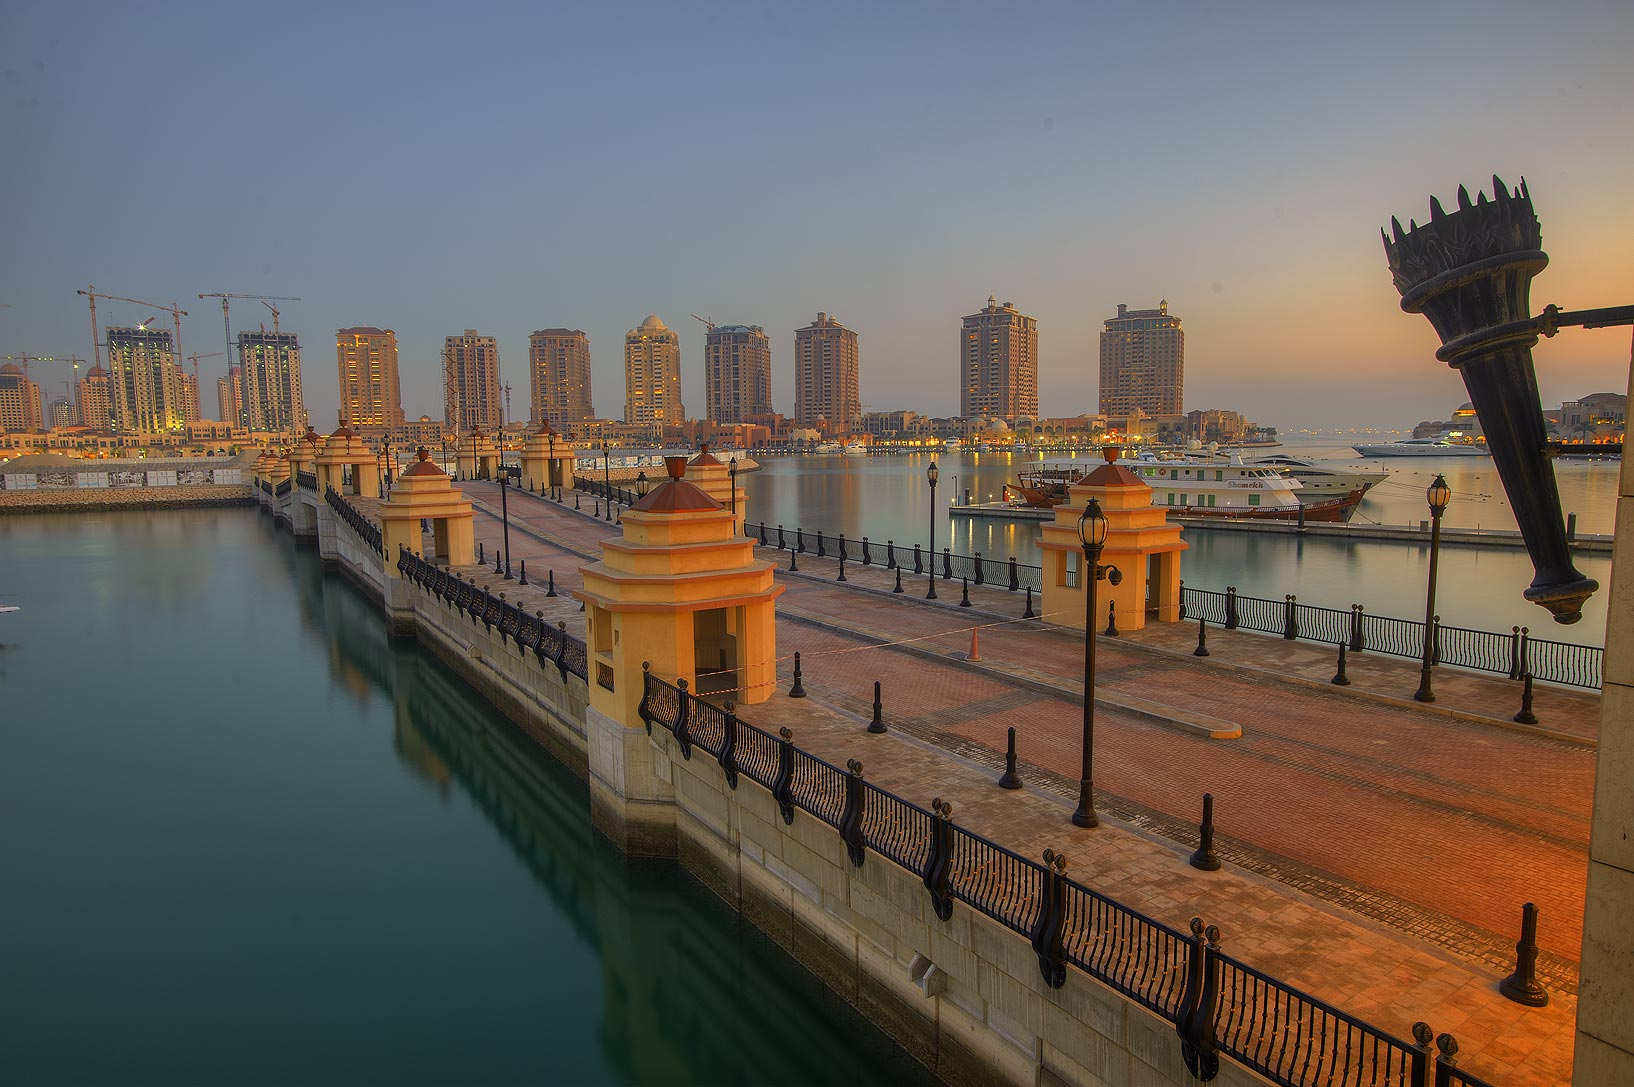 Sunset over Pier E in Porto Arabia in the Pearl Qatar development. Doha, Qatar